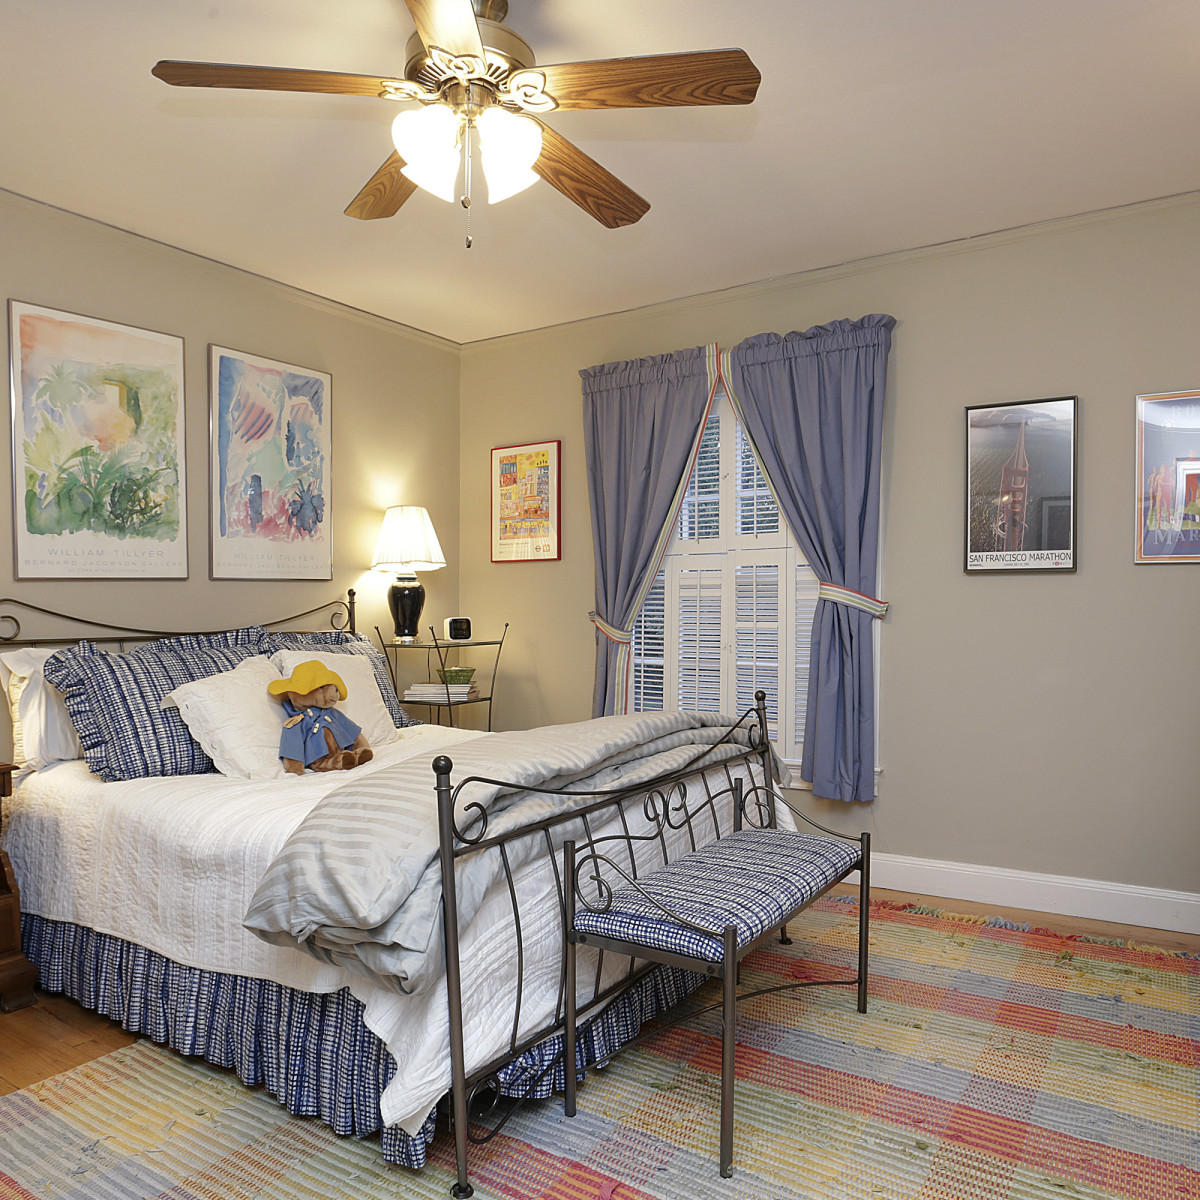 2424 Locke Lane in Houston house for sale bedroom